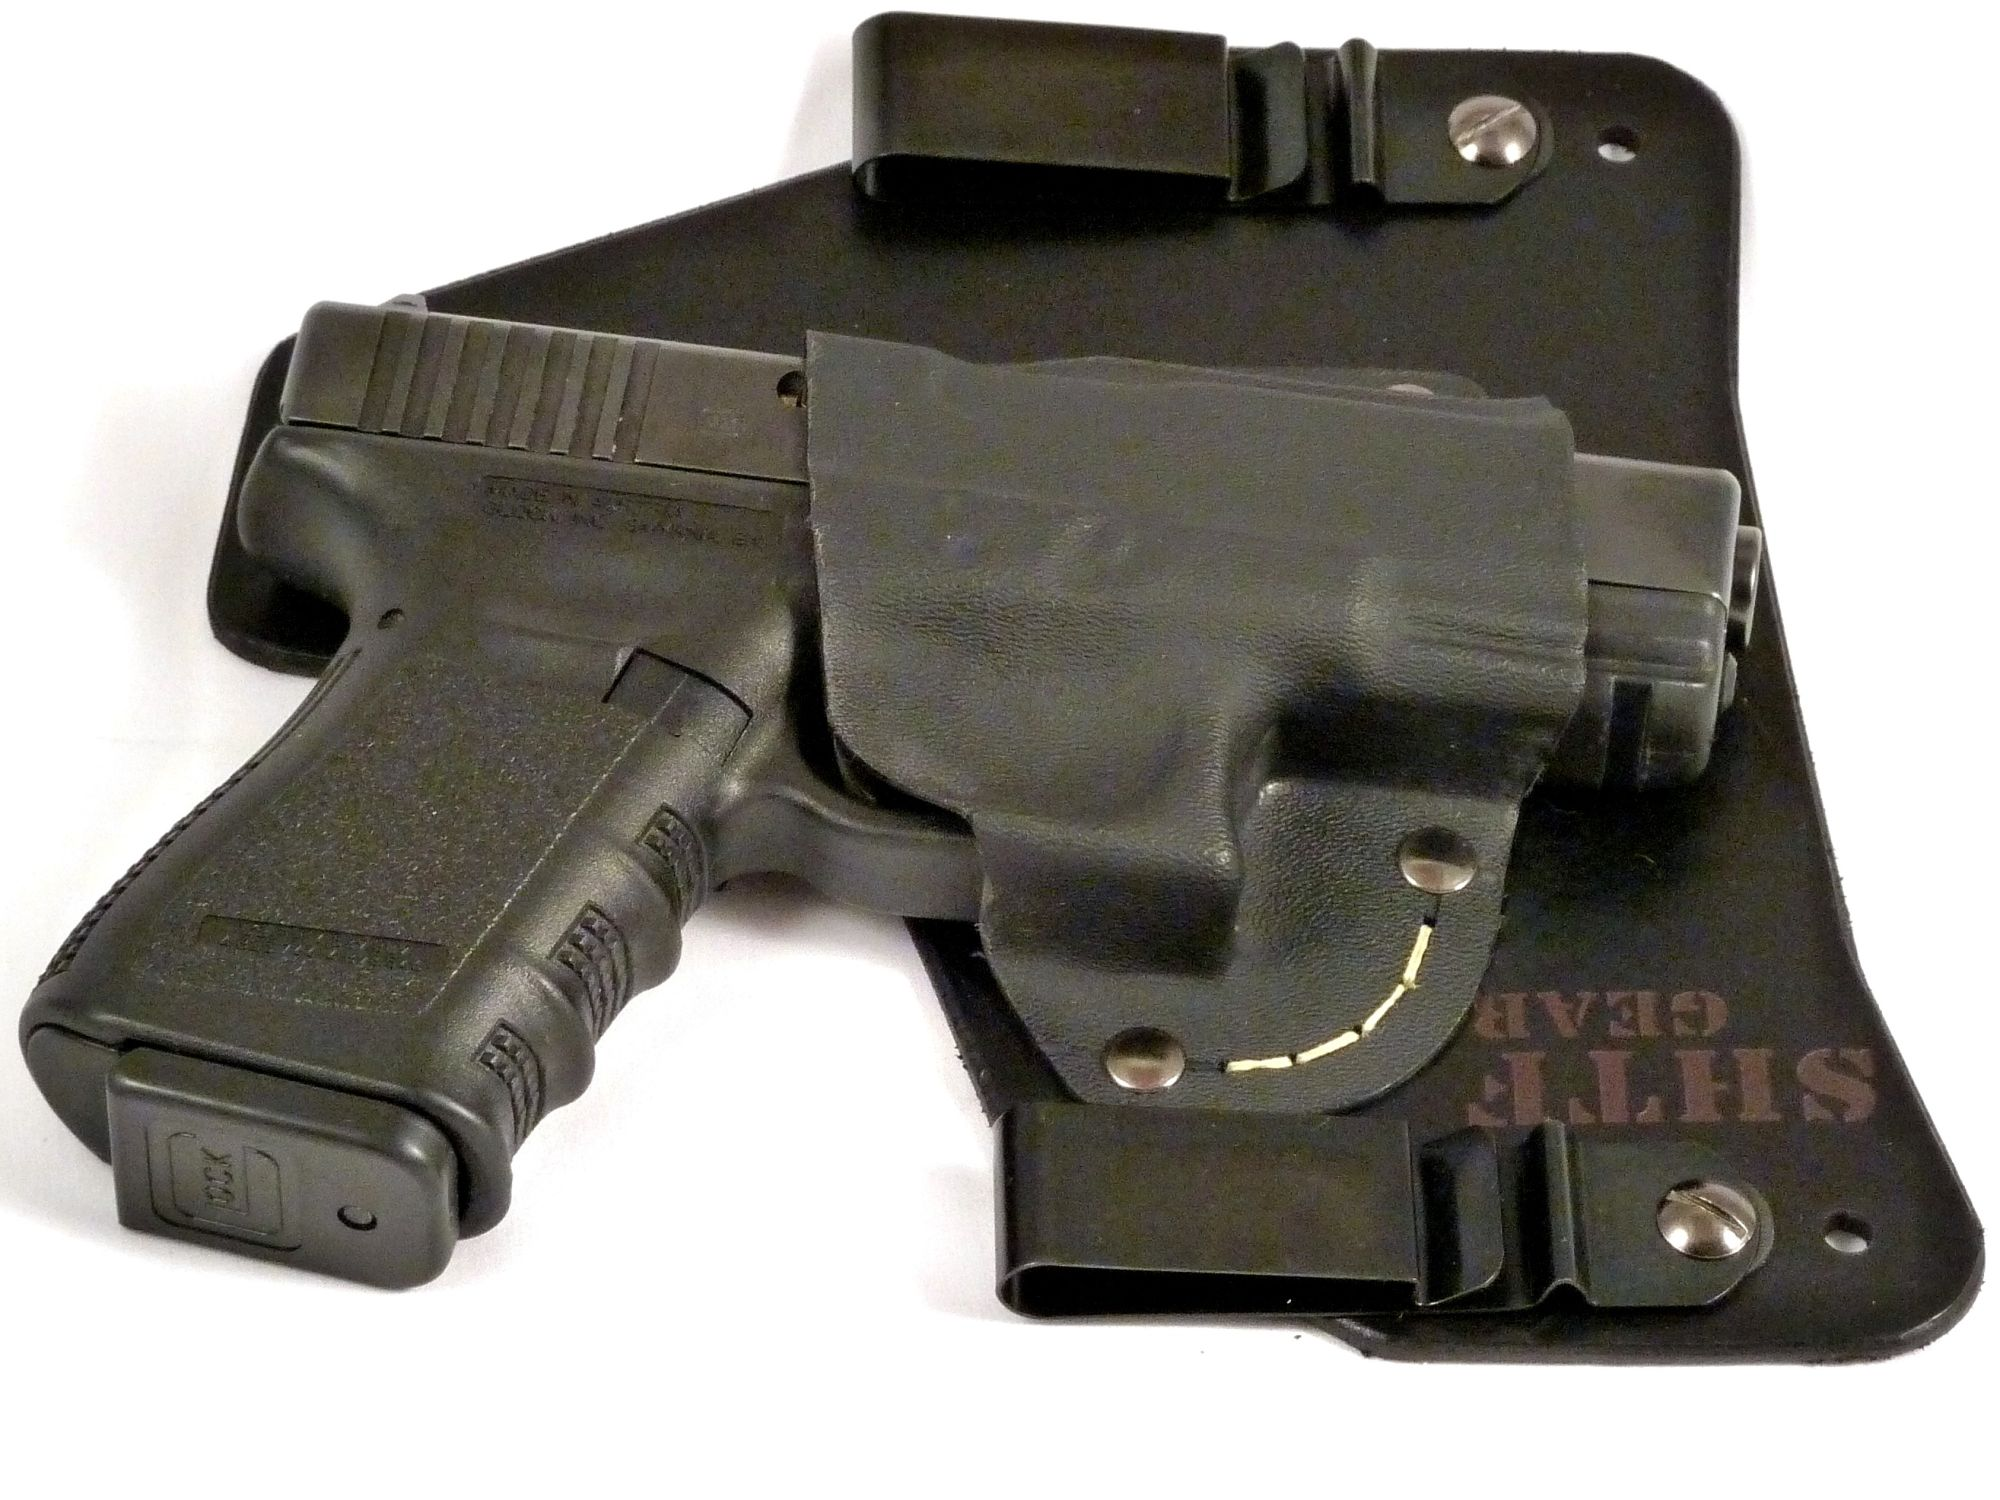 advice on holsters for G23-glock-gun-left-2000.jpg